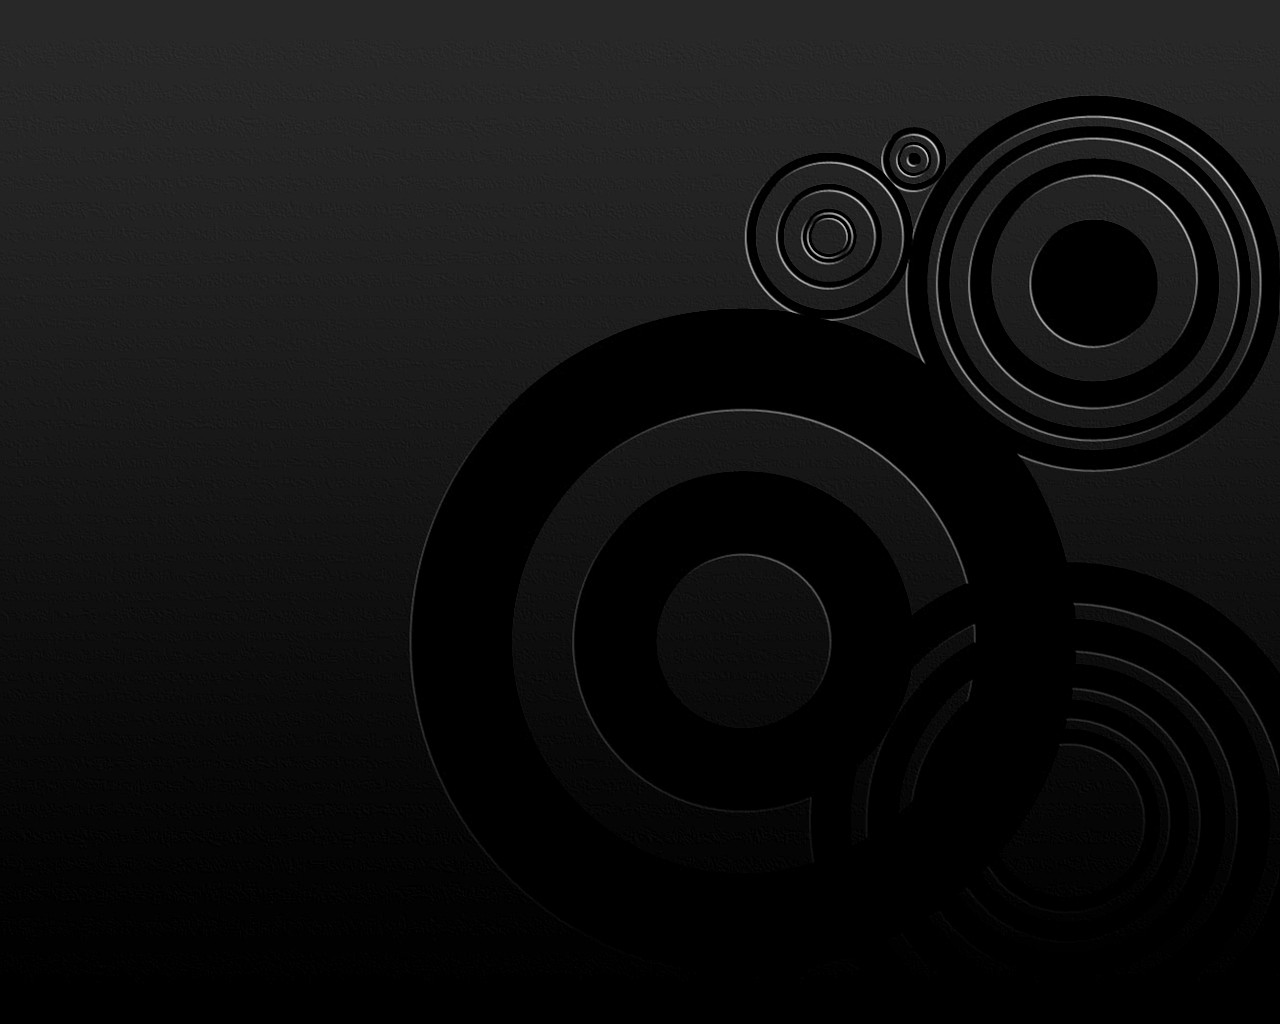 45+] Plain Black Wallpapers HD on